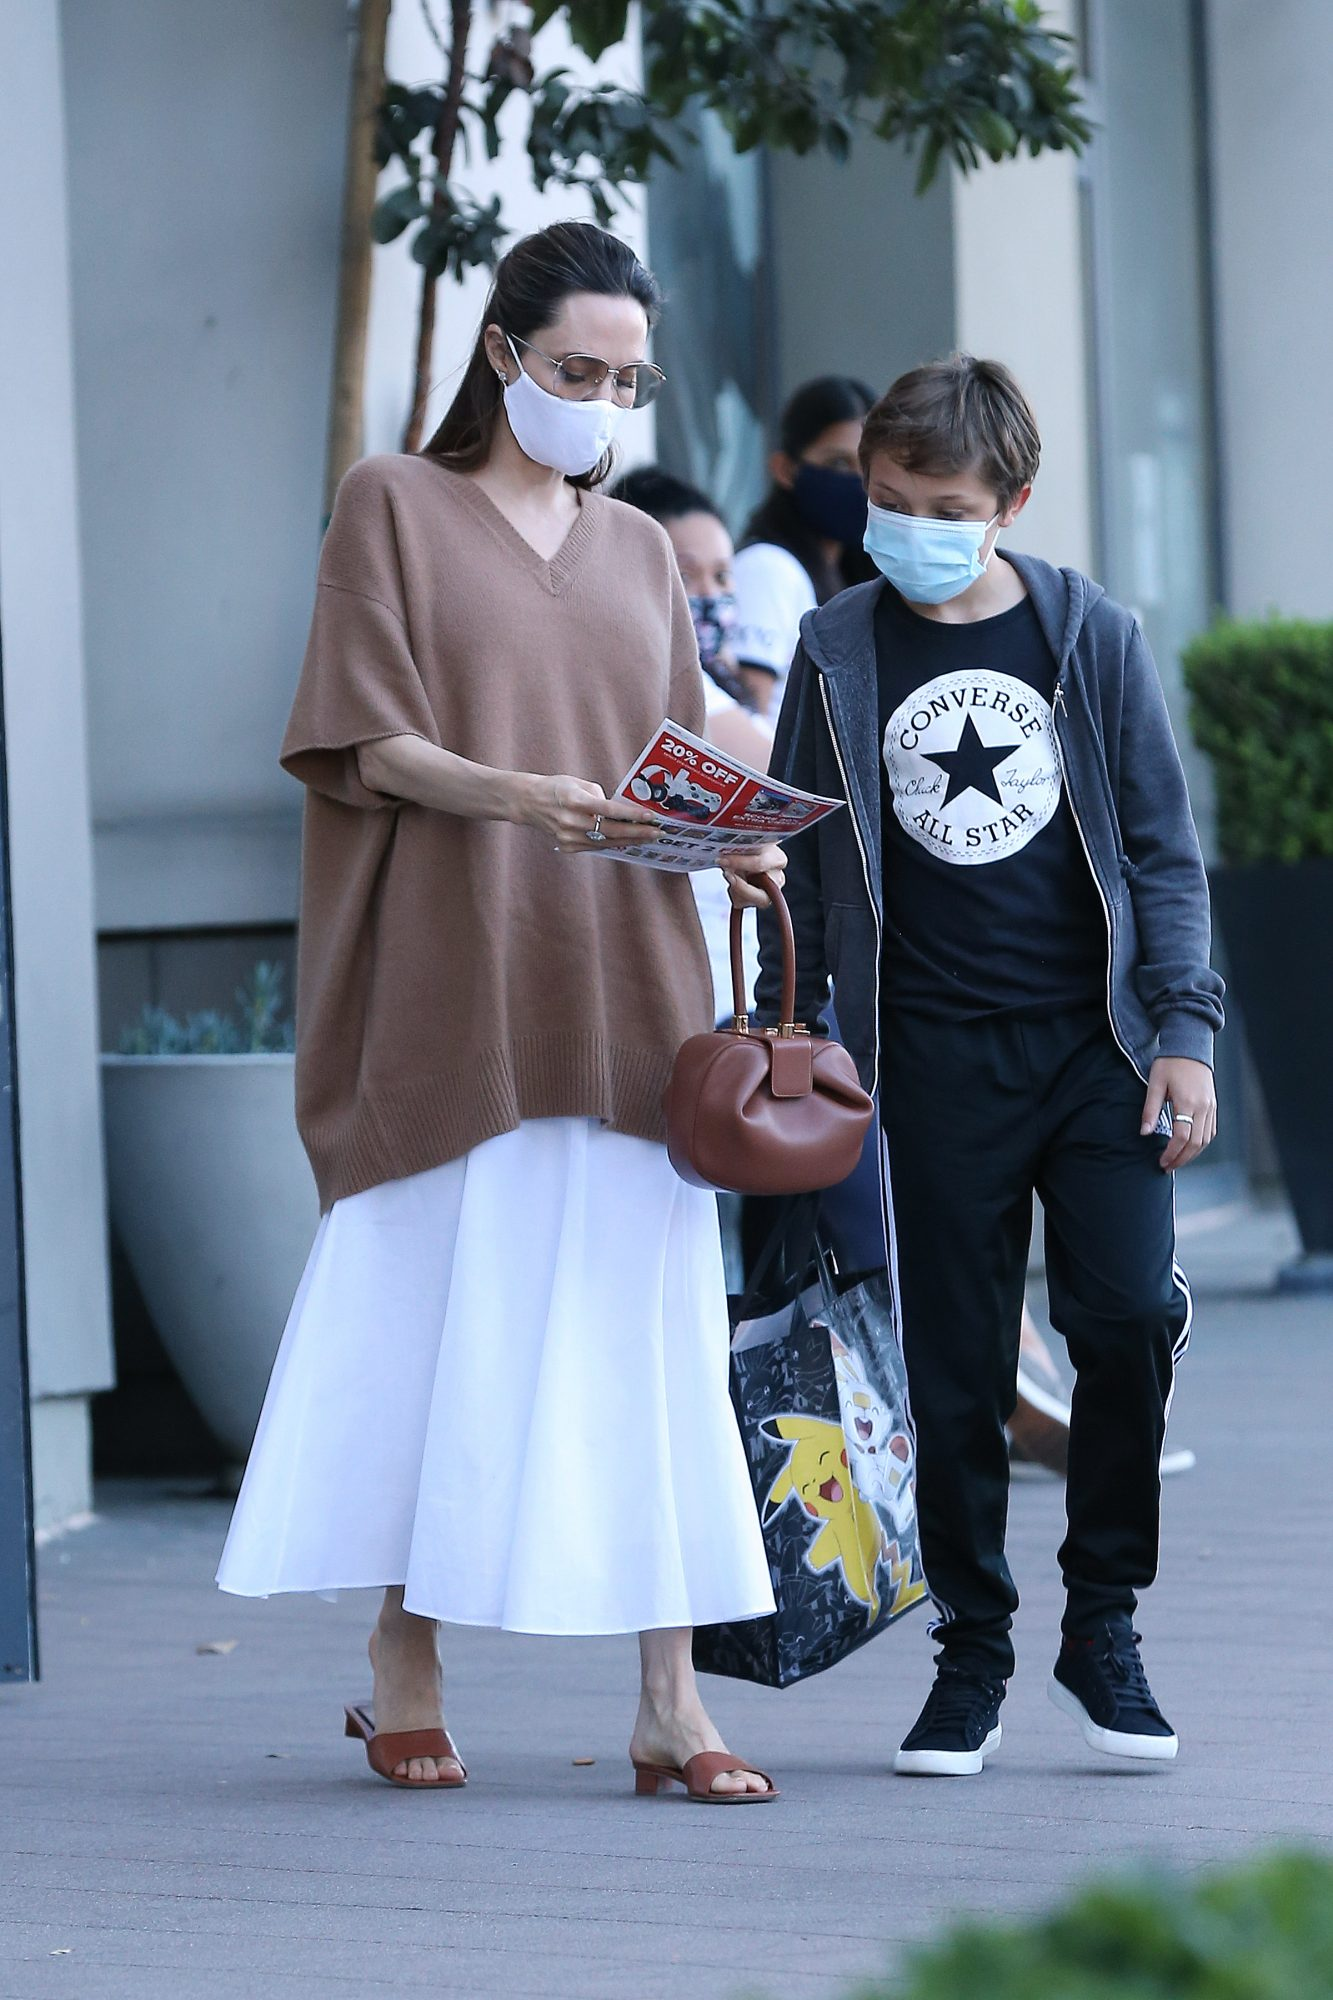 Angelina Jolie and and her son Knox hit up the video game store, GameStop in Los Angeles. Jolie carried the 'Nina Bag' by Gabriela Hearst; the bag is named for artist and activist Nina Simone. The 45 year old actress switched up from her normal all black outfits, wearing an oversized brown sweater, white skirt, and brown sandals.